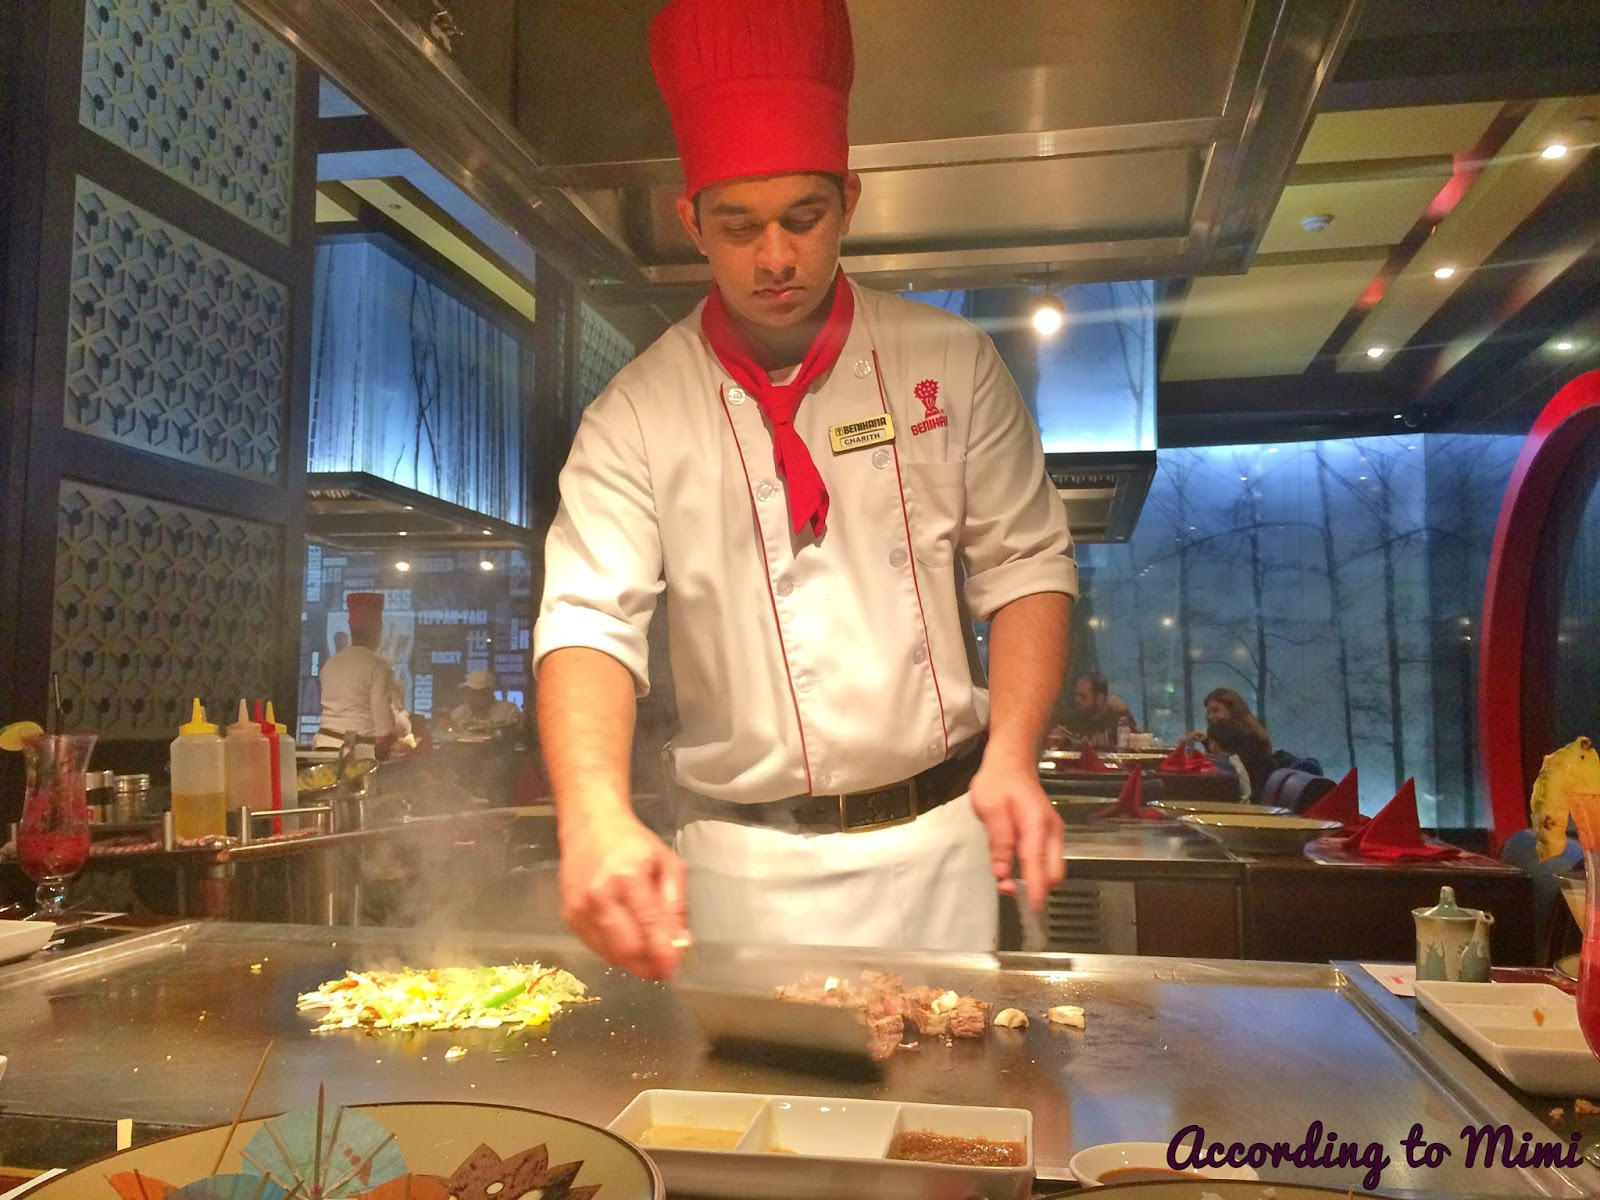 Review: Benihana - According to Mimi